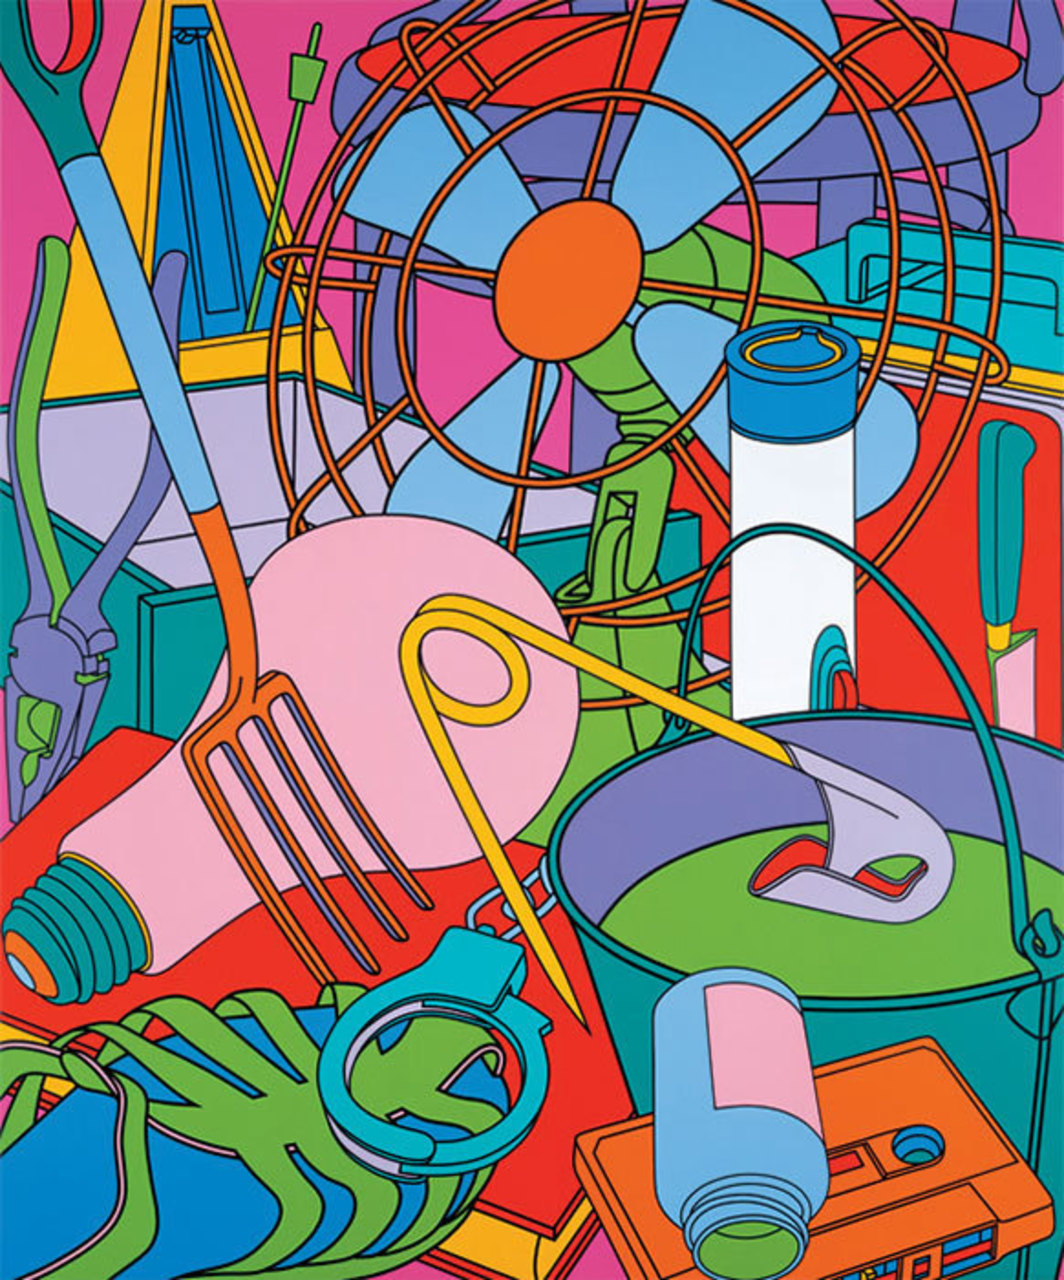 "Michael Craig-Martin, Eye of the Storm, 2003, acrylic on canvas, 11' x 9' 2""."